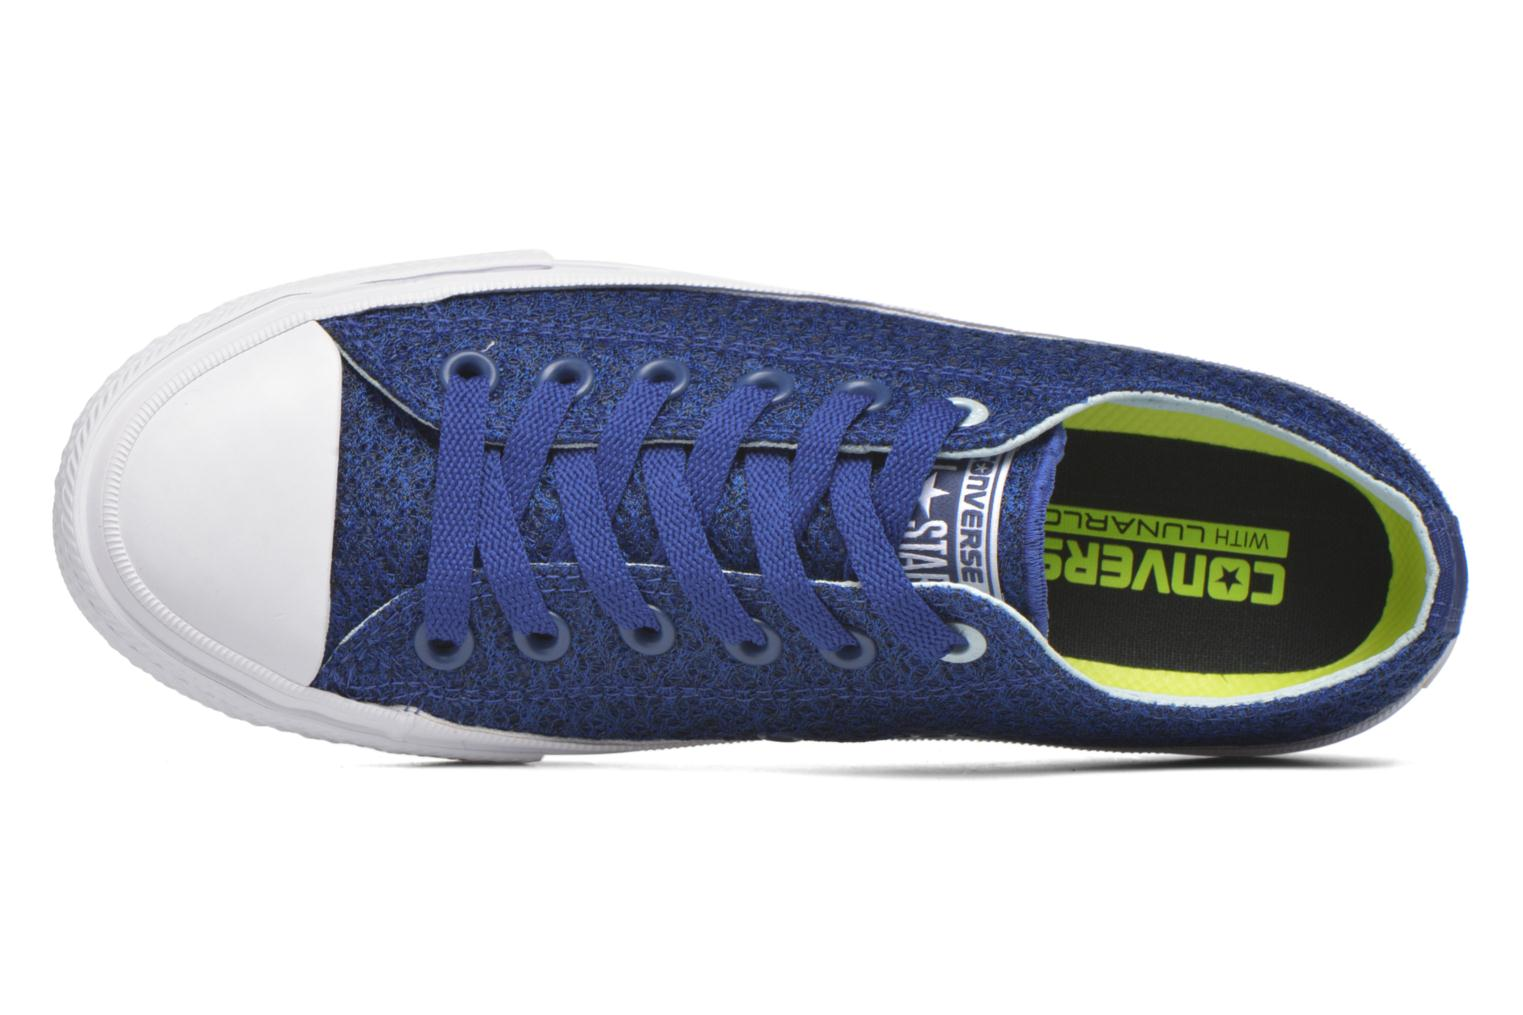 Chuck Taylor All Star II Ox W Roadtrip Blue/White/Blue